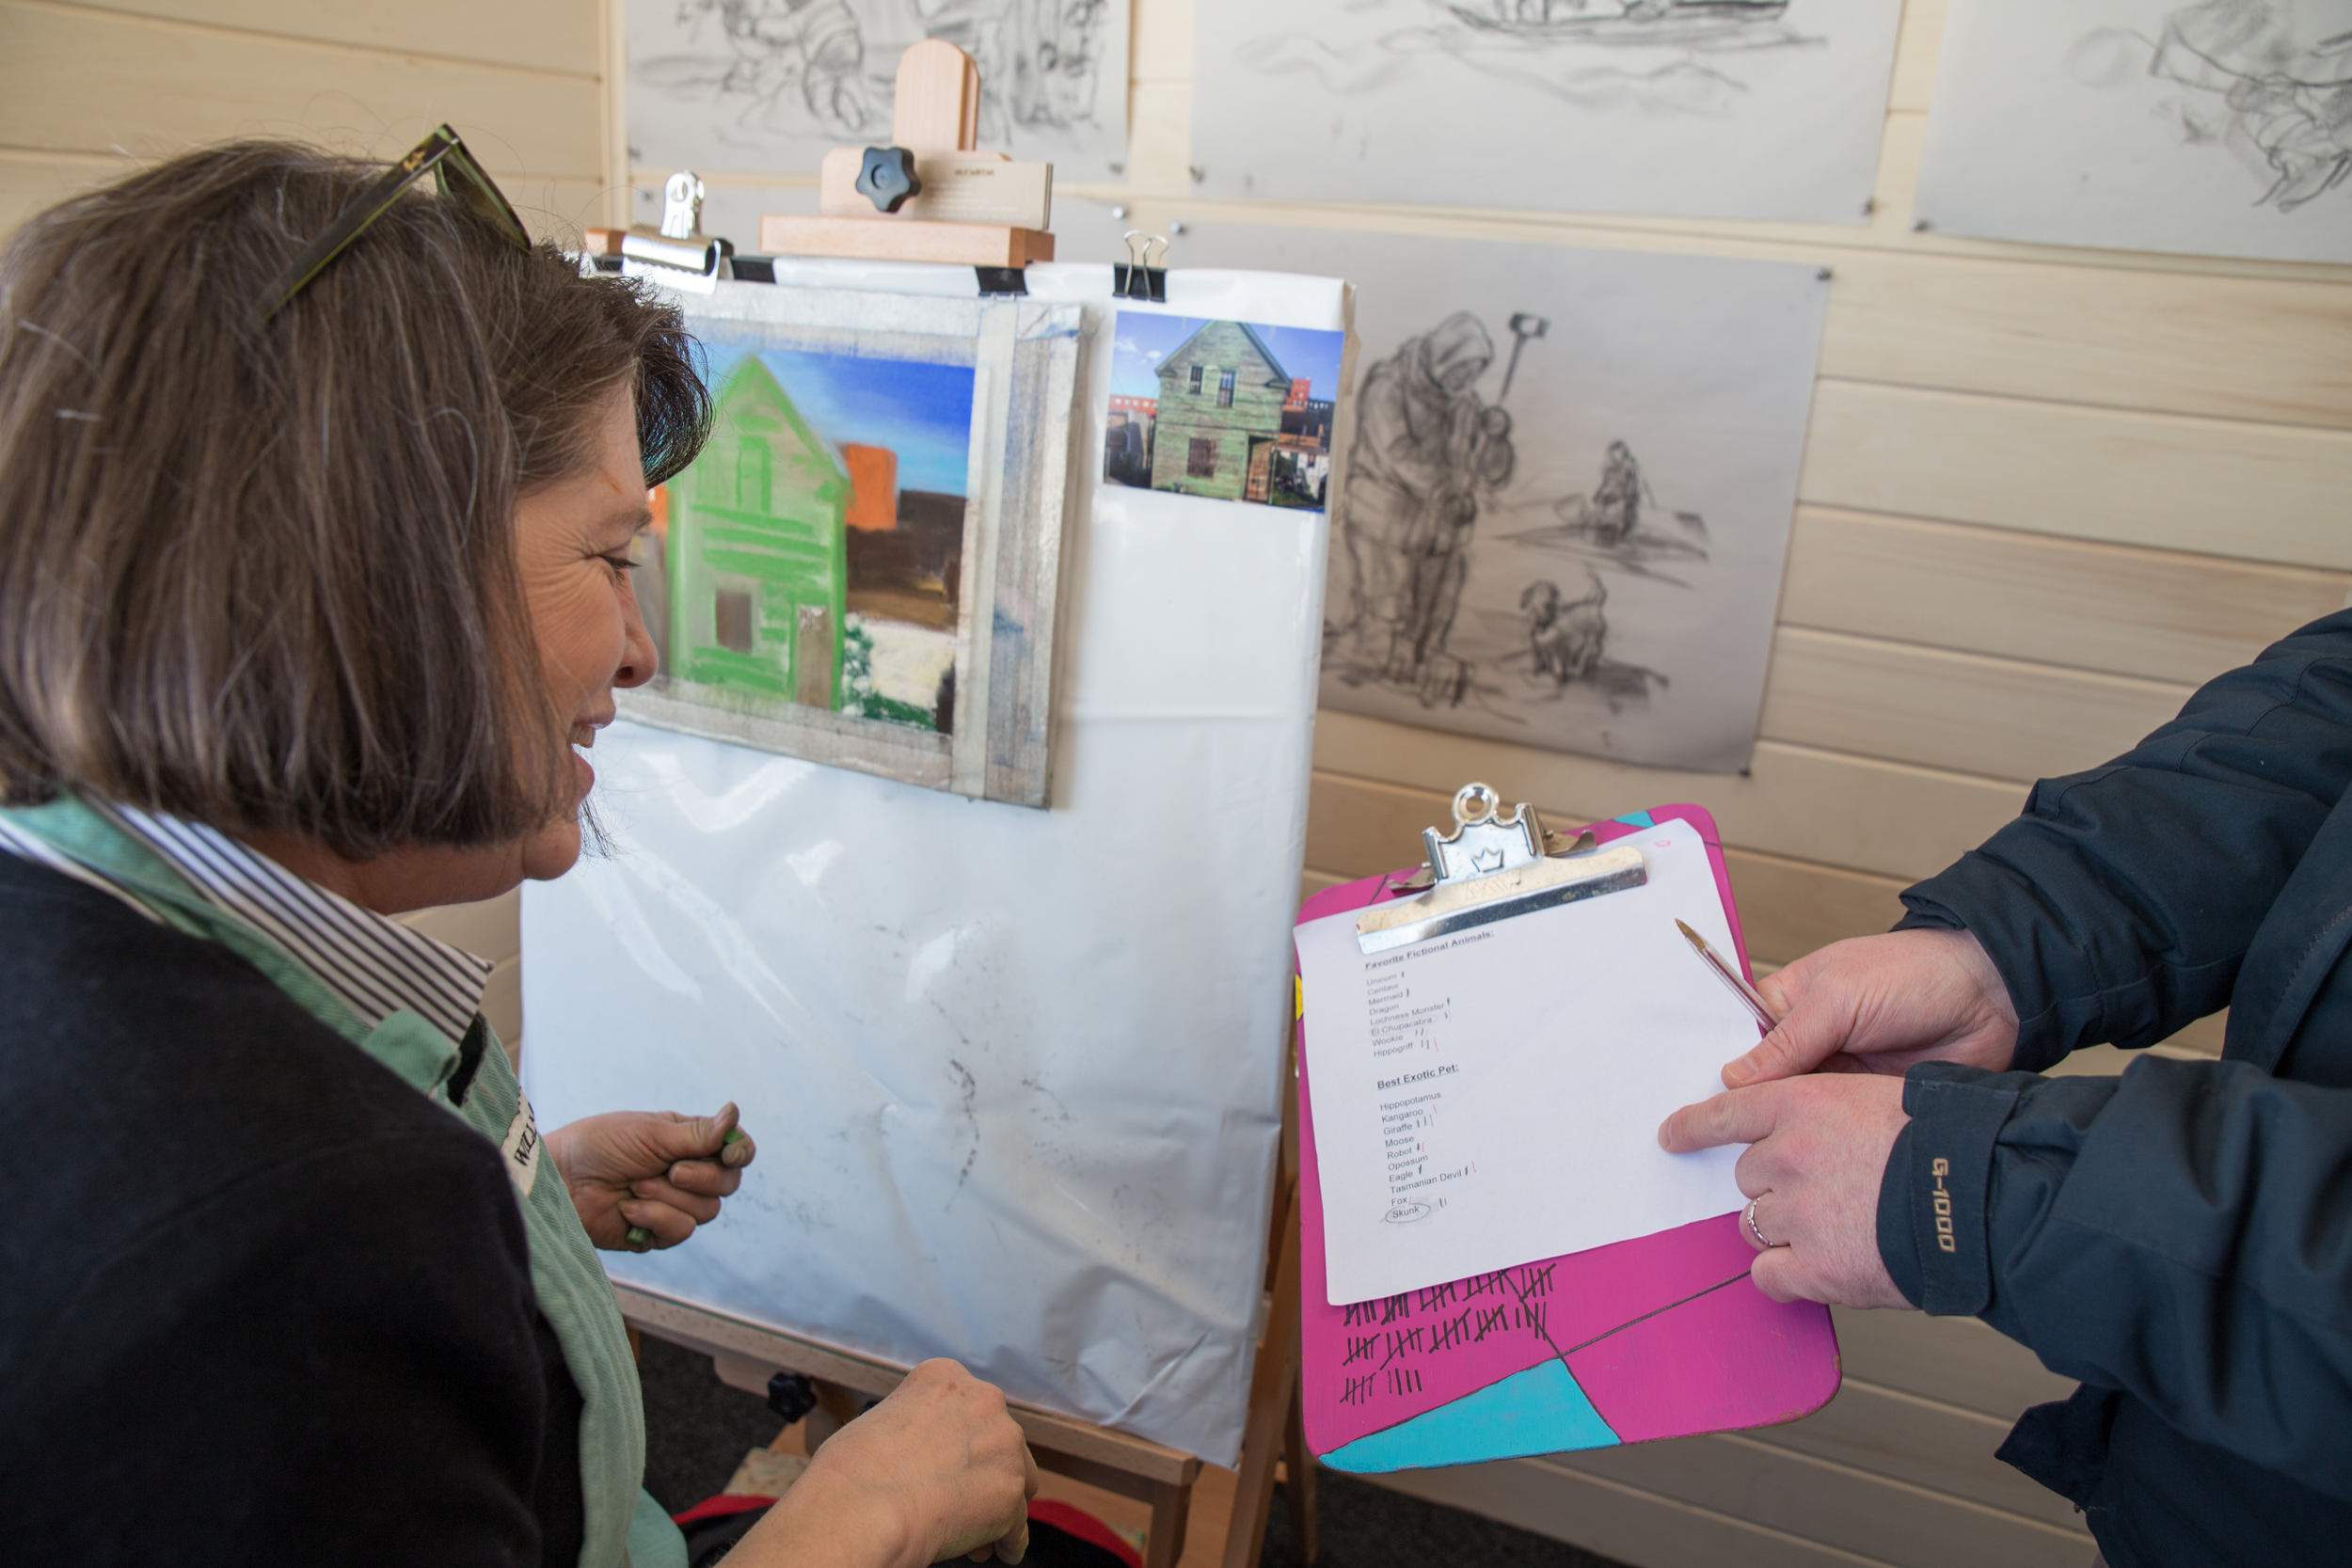 """See artists perform their craft in the well-crafted """"Box""""Studio Shanty. Find it where you see the big """"ART"""" sign."""